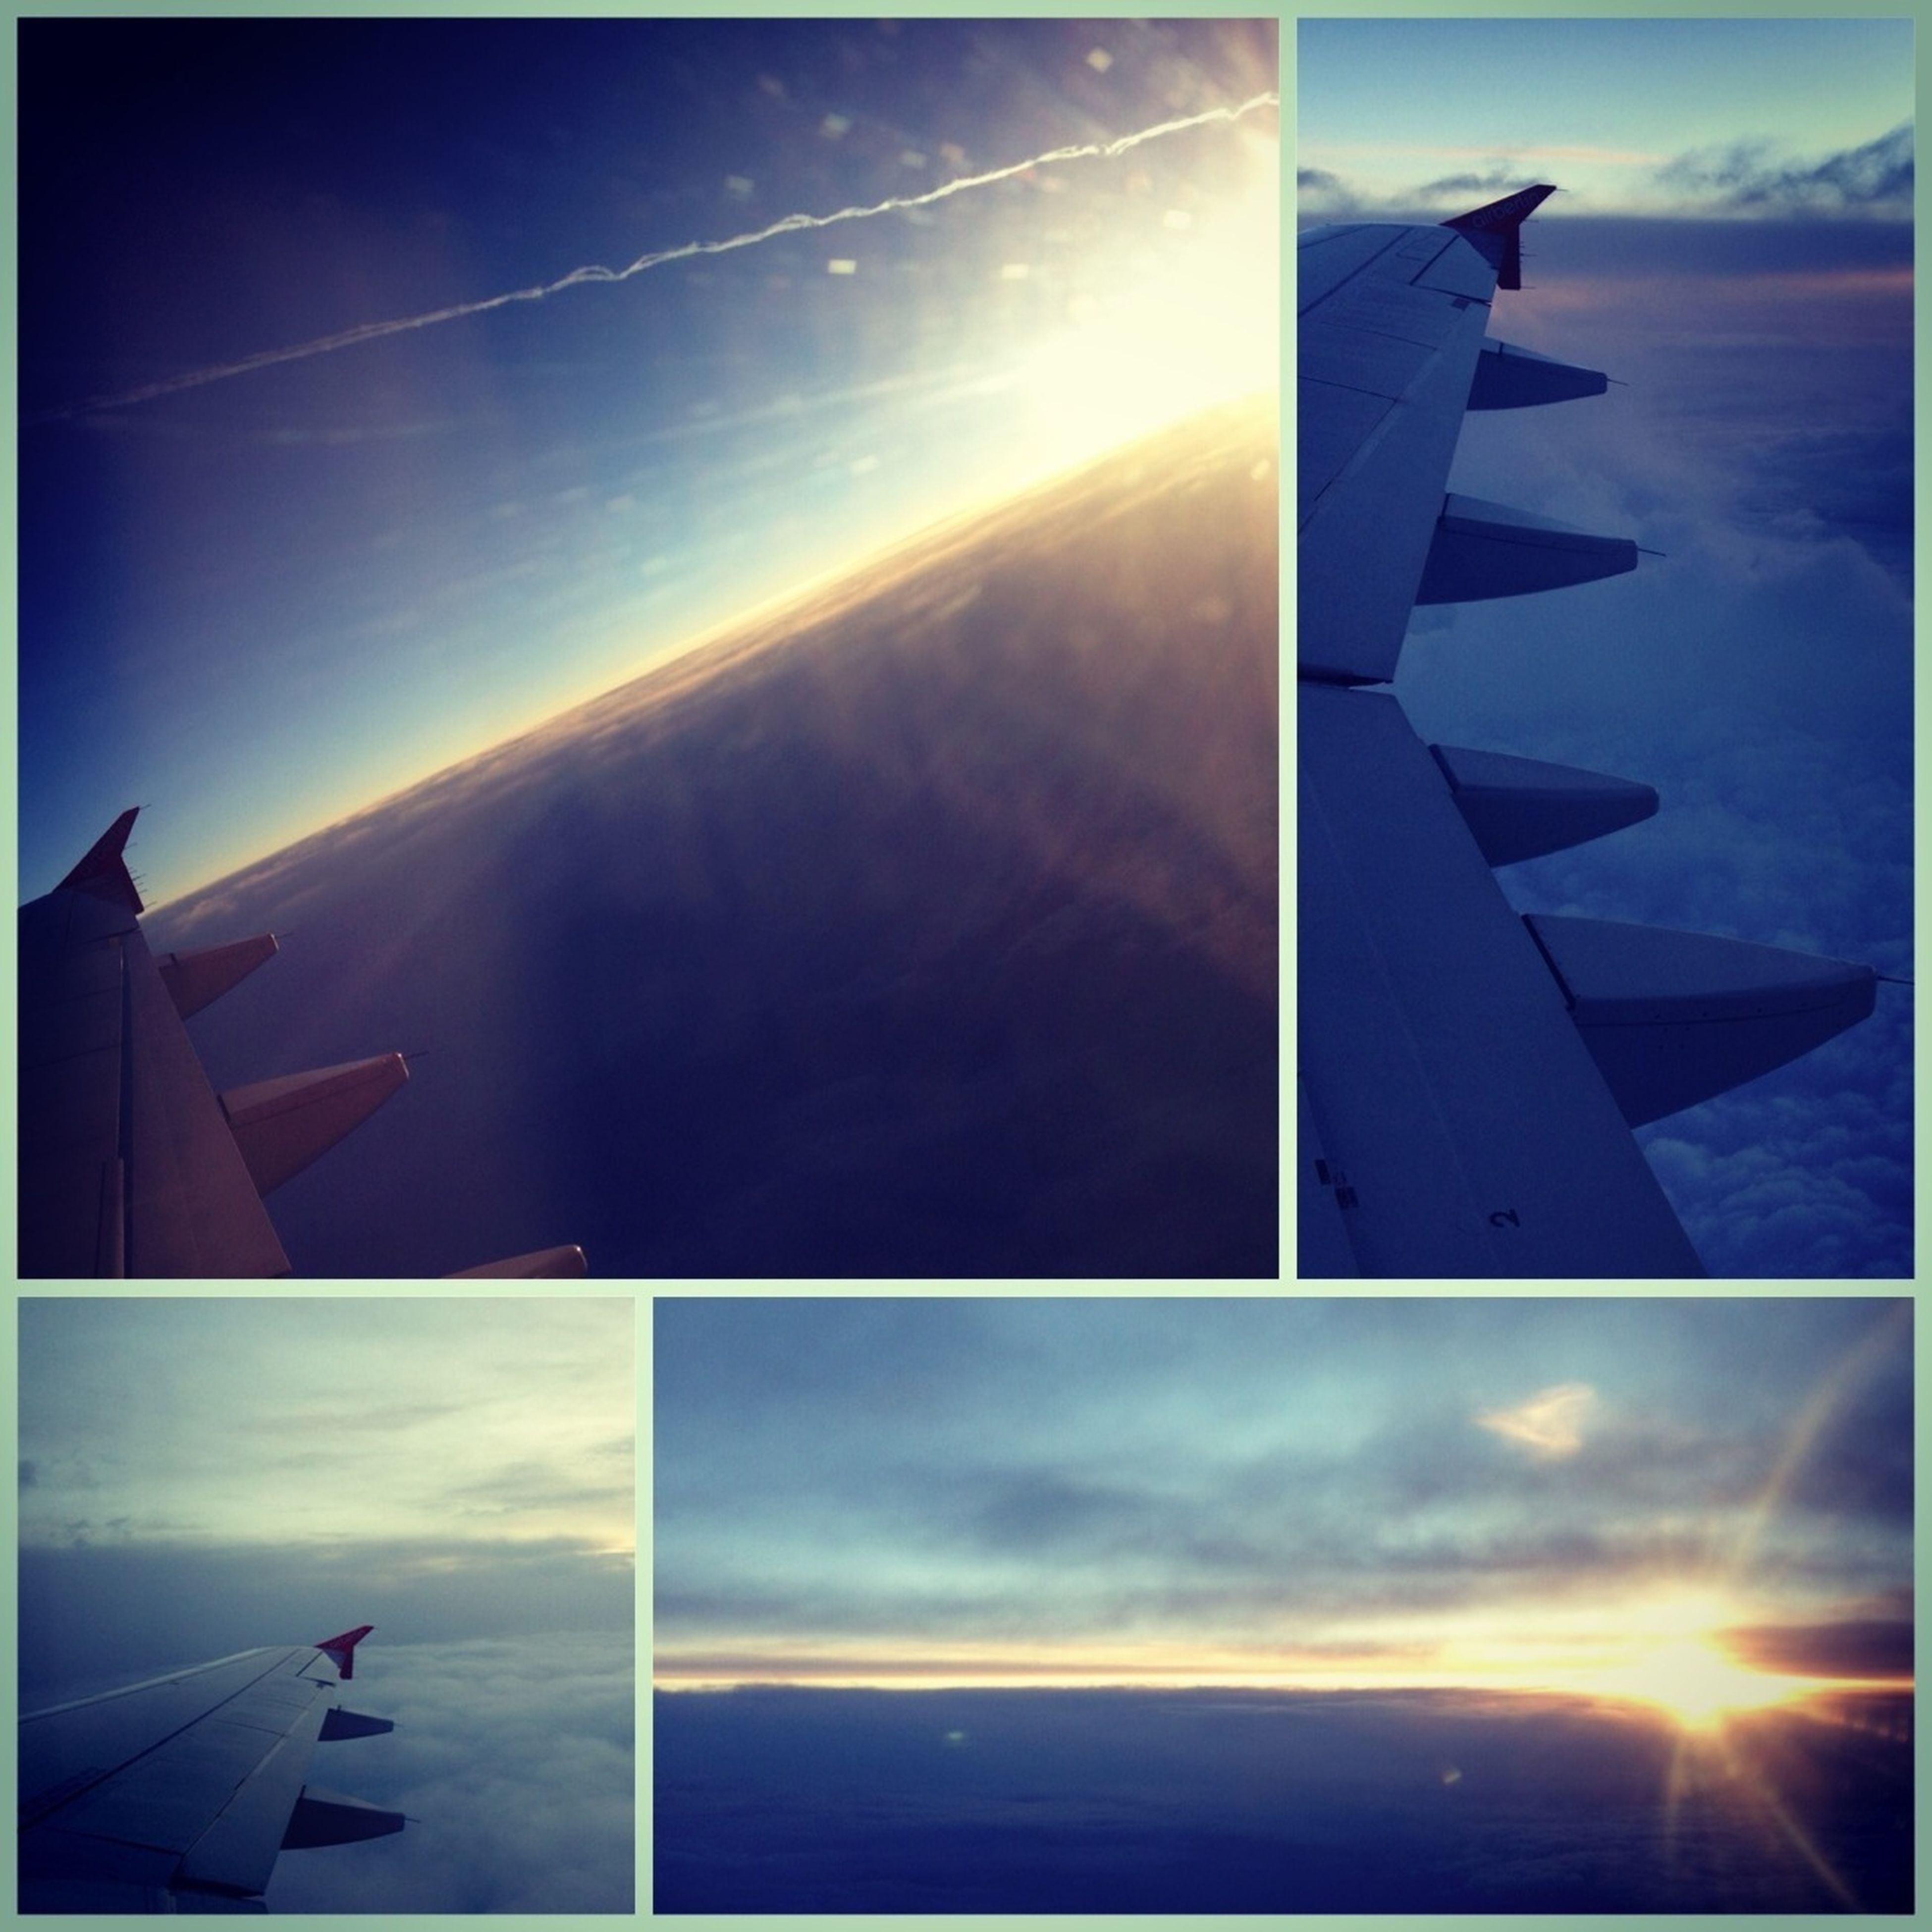 transportation, airplane, sky, aircraft wing, flying, sun, air vehicle, mode of transport, sunset, sunlight, part of, cloud - sky, vapor trail, cropped, scenics, travel, beauty in nature, journey, sunbeam, cloud